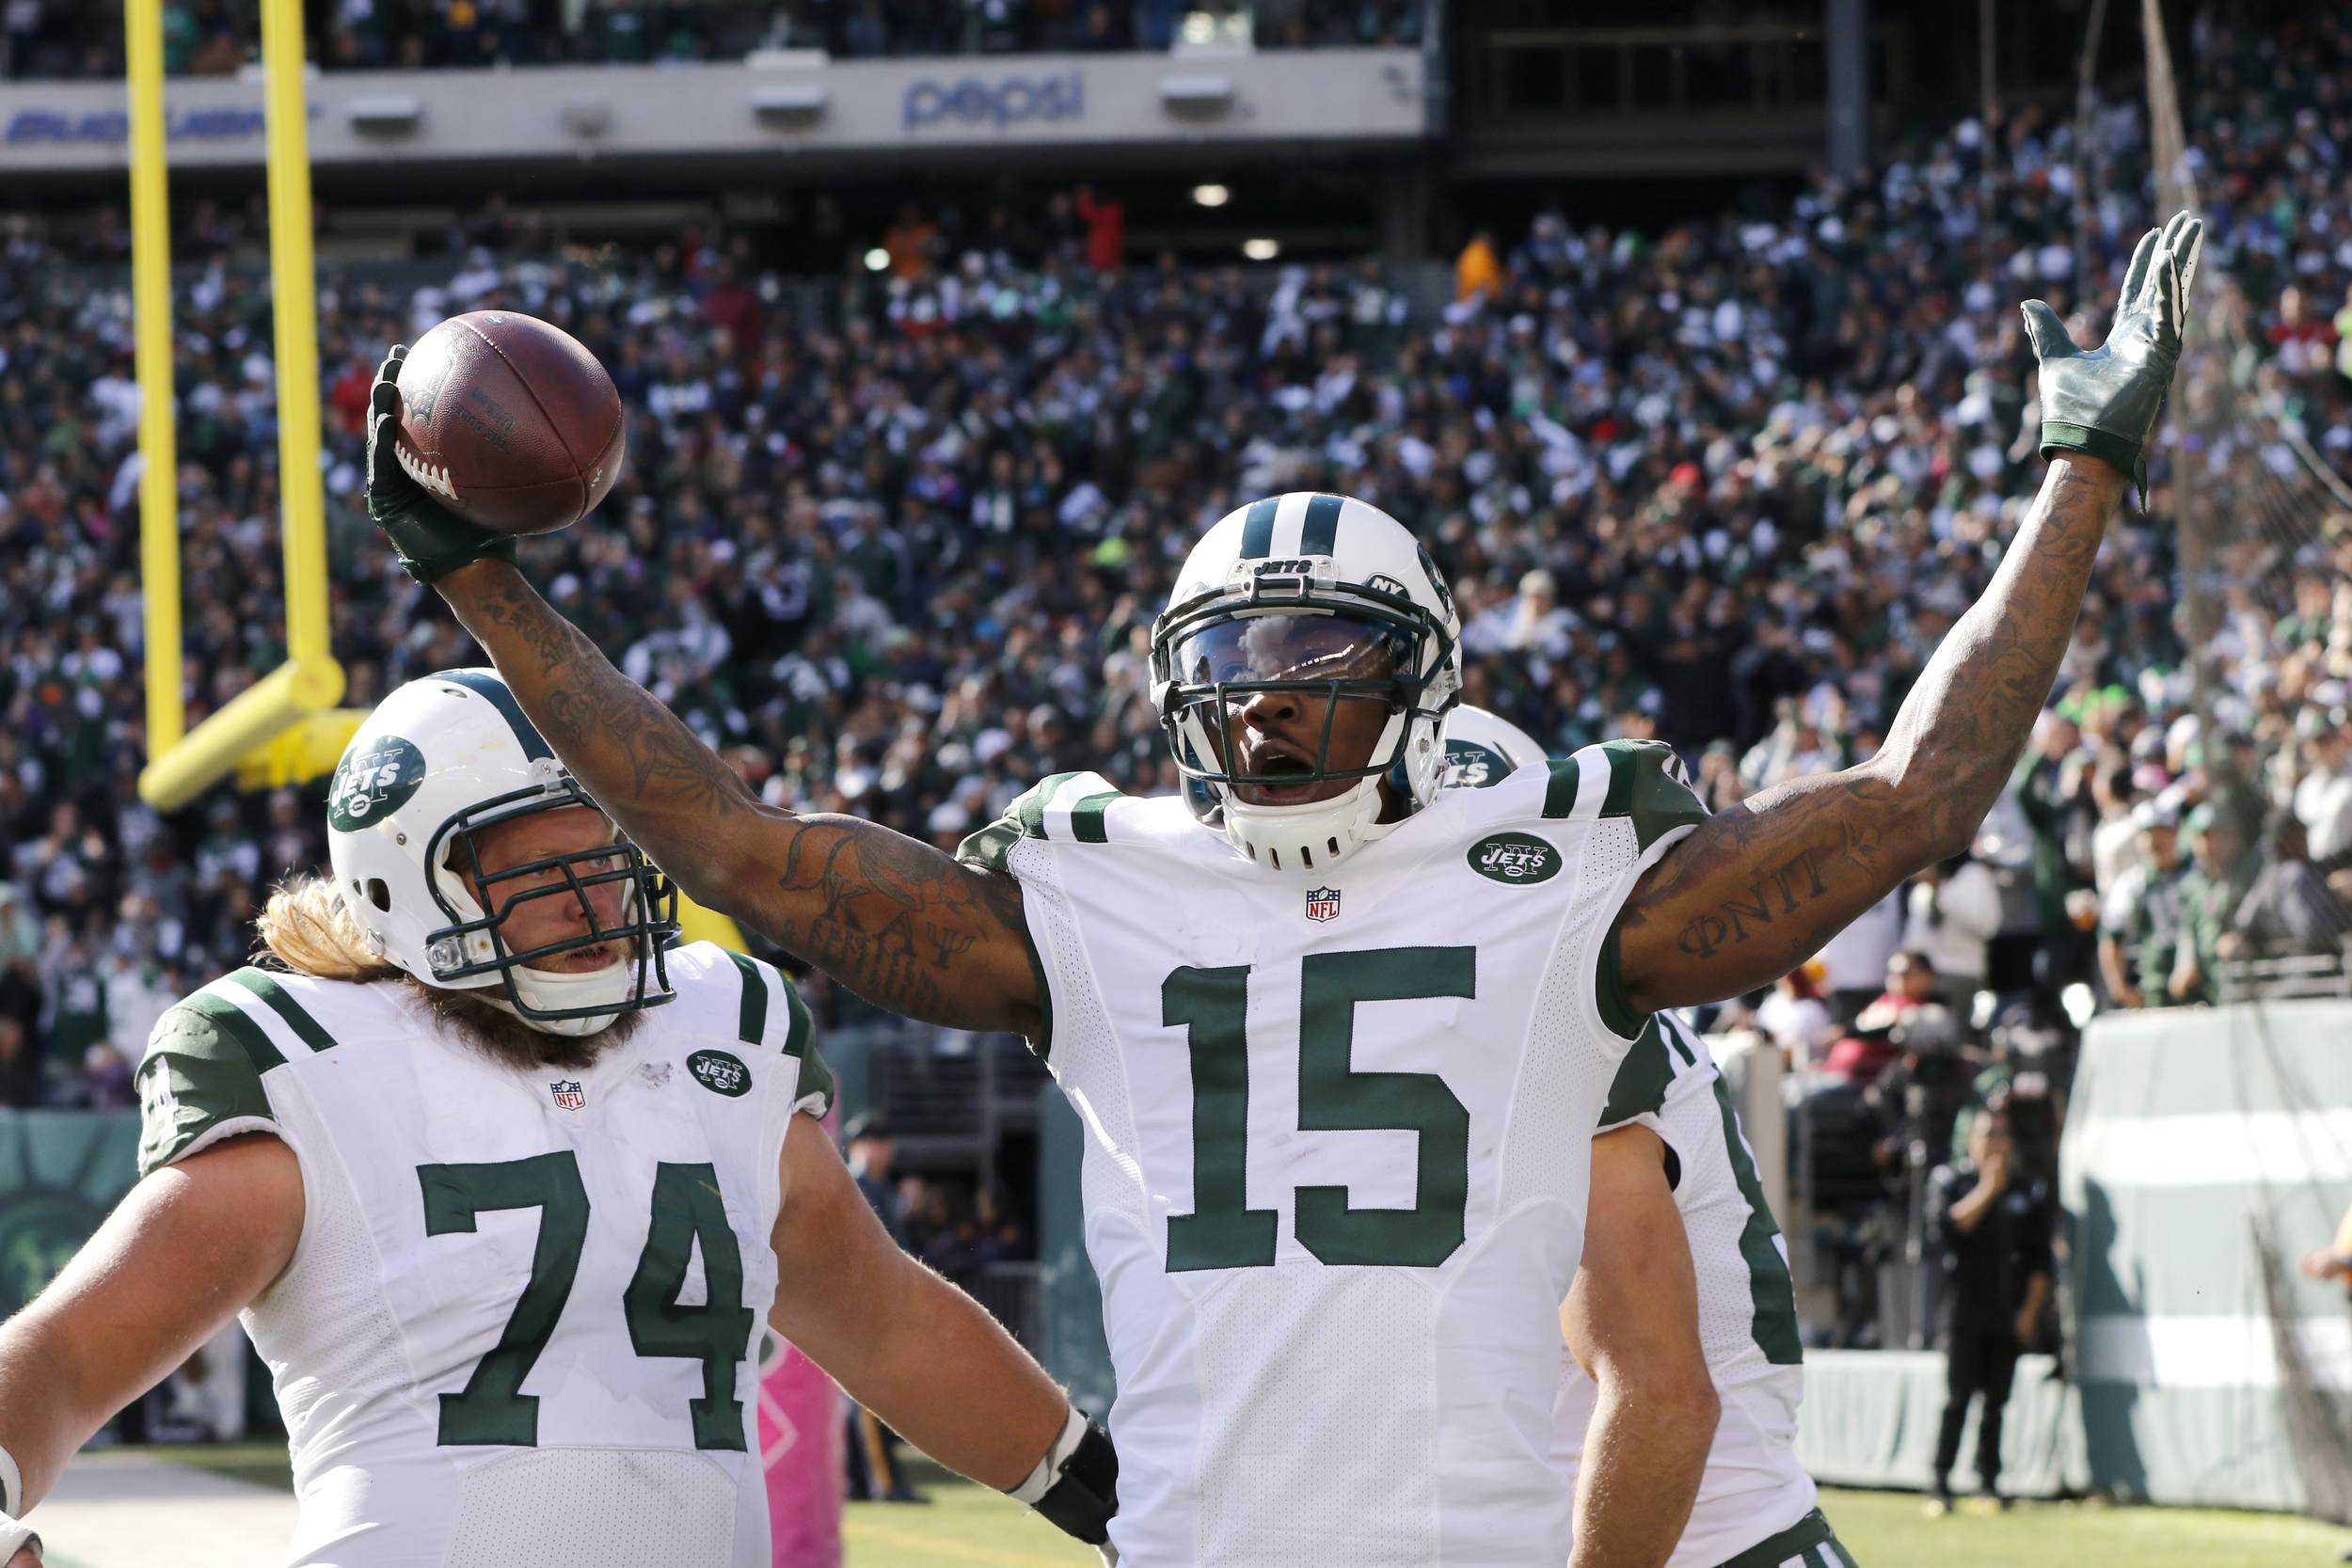 New York Jets wide receiver Brandon Marshall (15) celebrates with teammates Nick Mangold (74) and Eric Decker (87) after scoring on a touchdown pass from quarterback Ryan Fitzpatrick, not pictured, during the second half of an NFL football game against the Washington Redskins, Sunday, Oct. 18, 2015, in East Rutherford, N.J. (Gary Hershorn/AP)